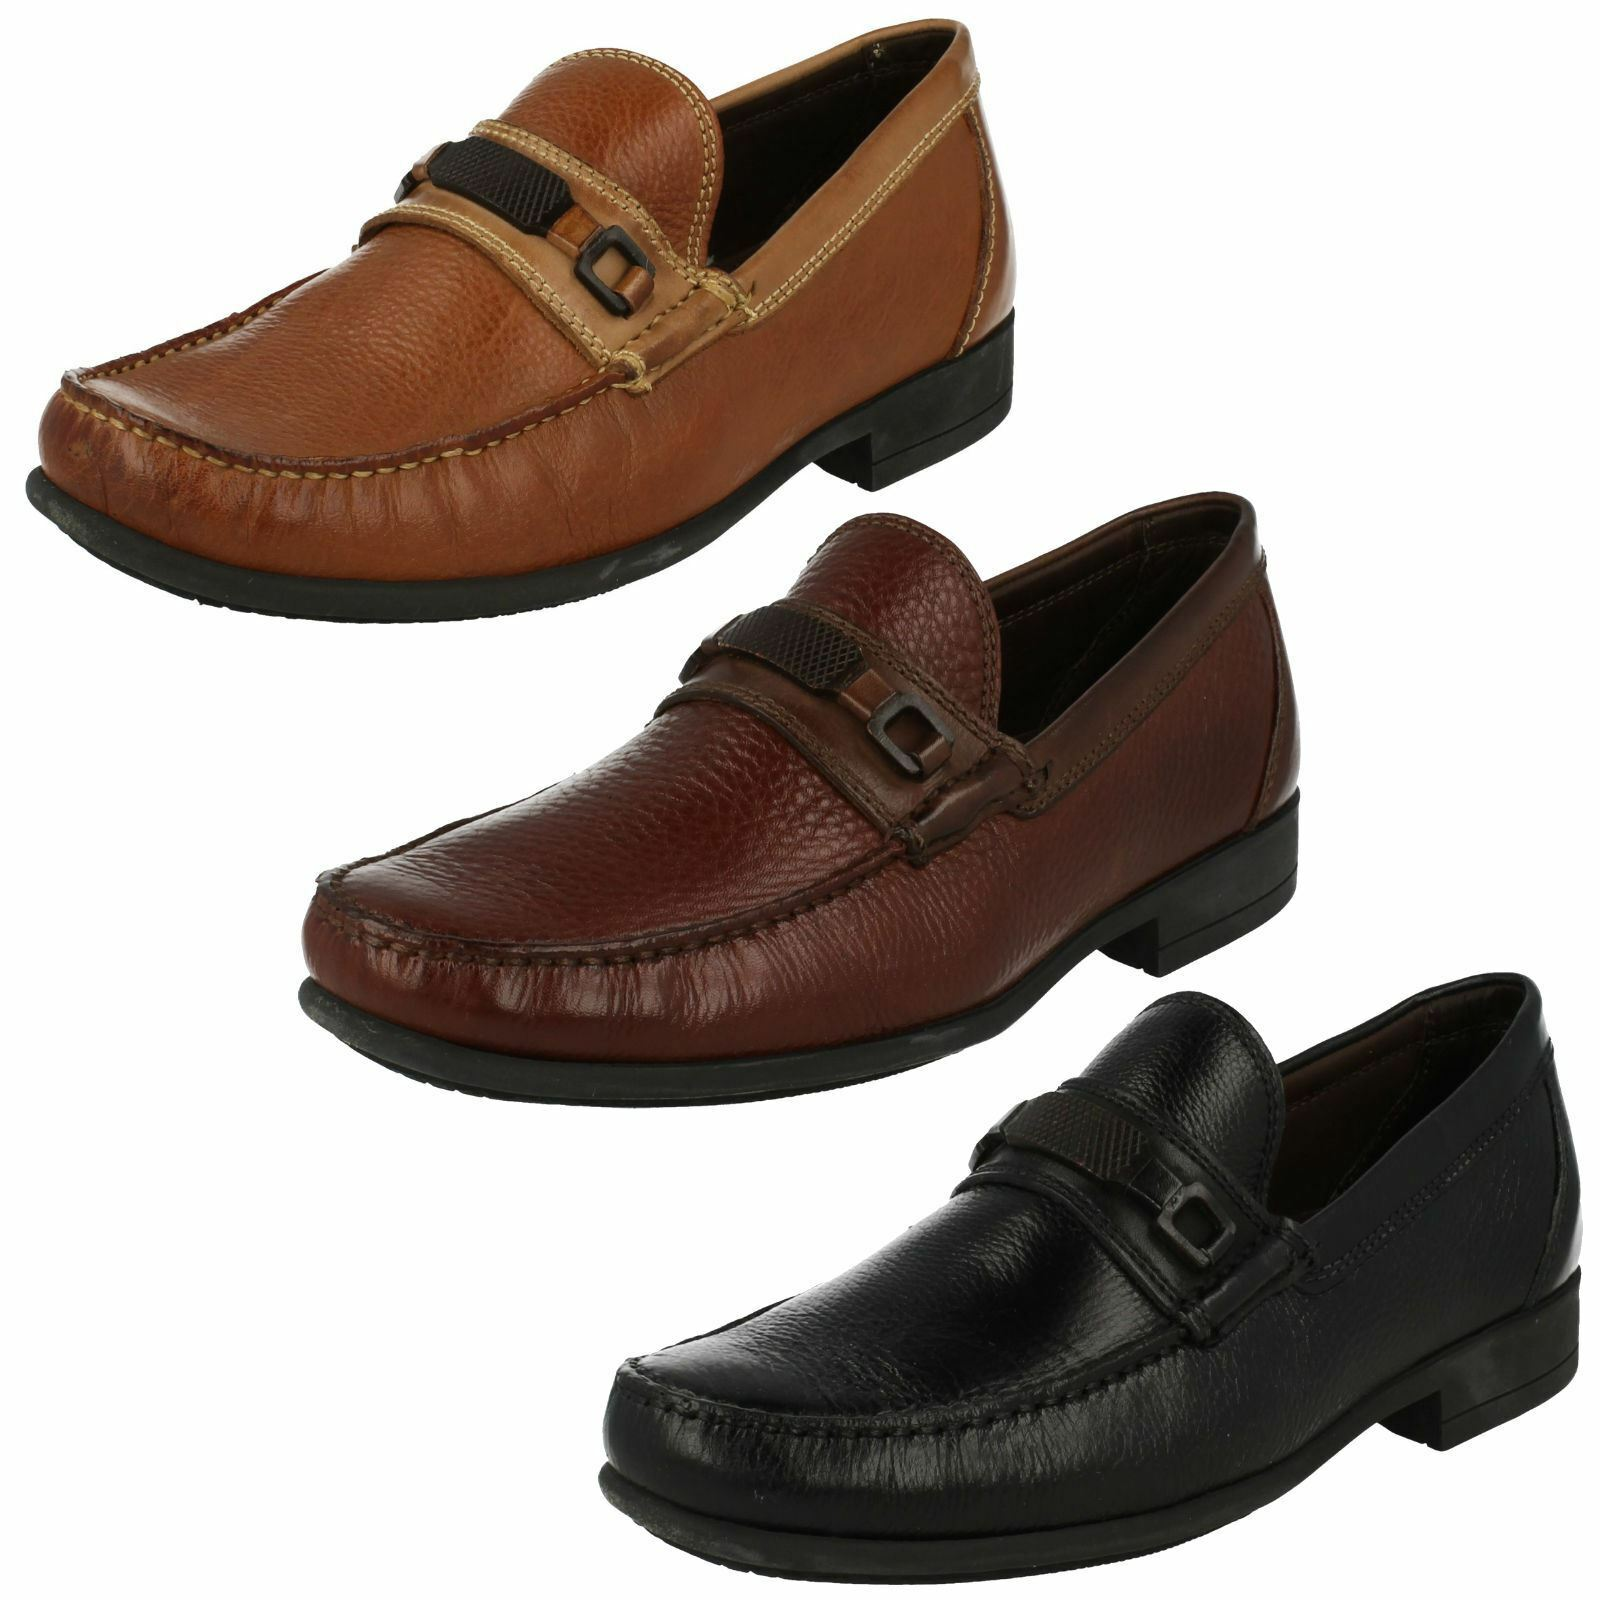 Mens Anatomic & Co Shoes Lins